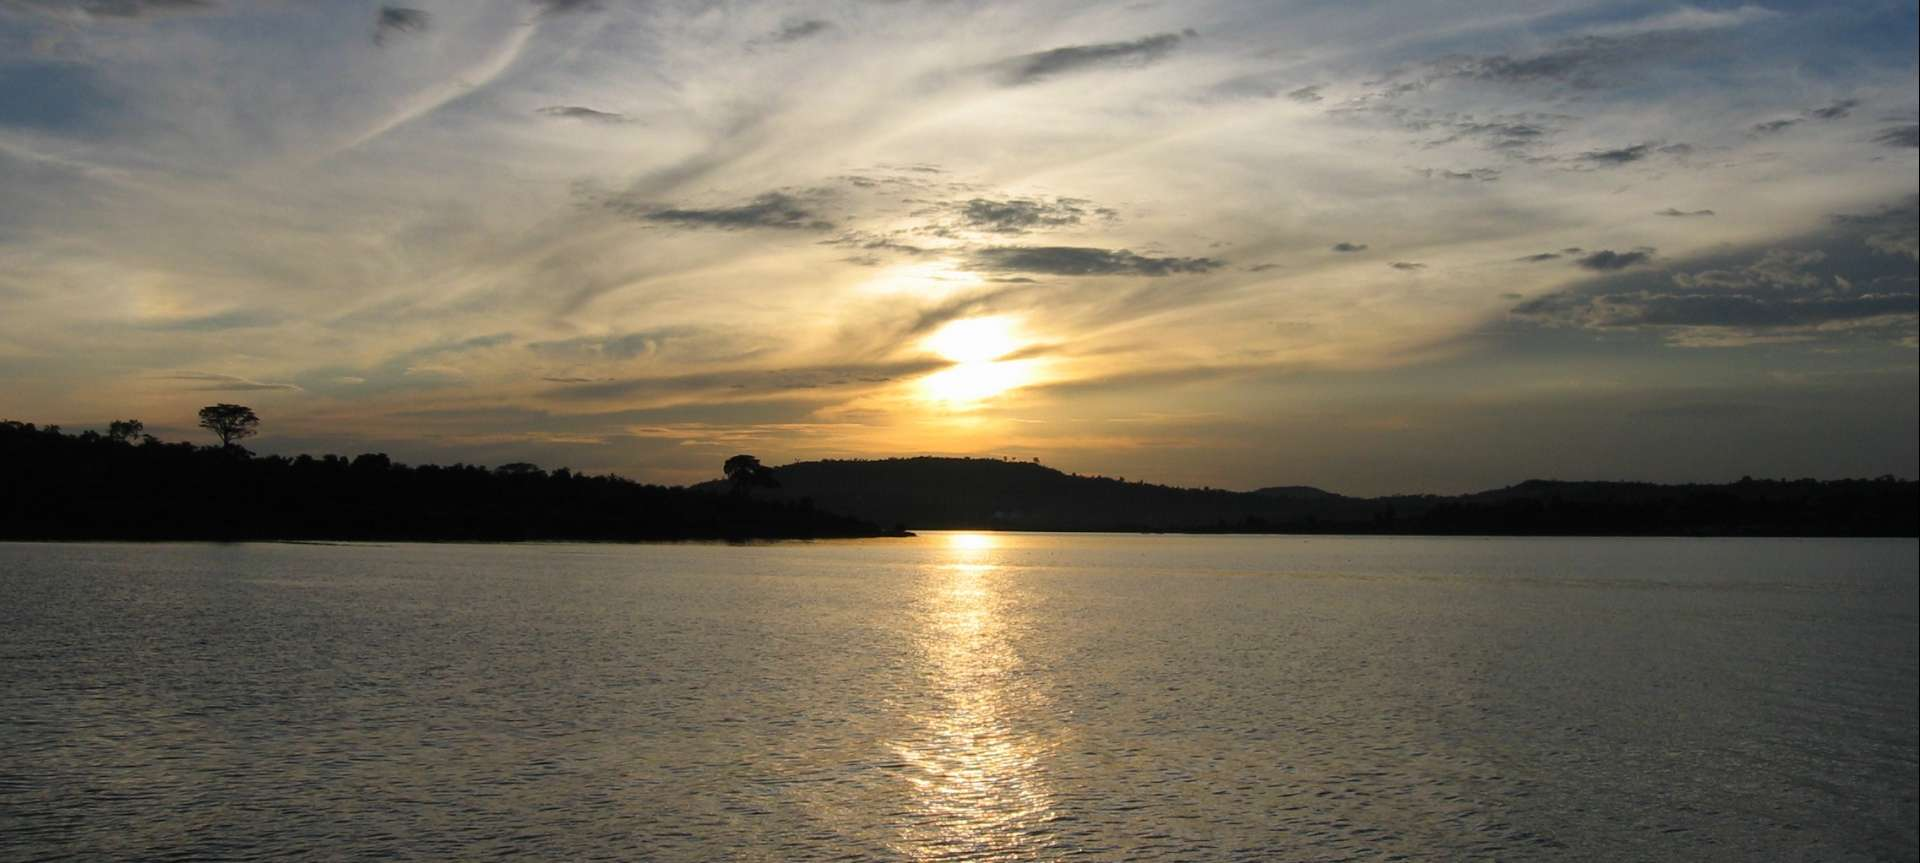 Lake Victoria - Africa Wildlife Safaris